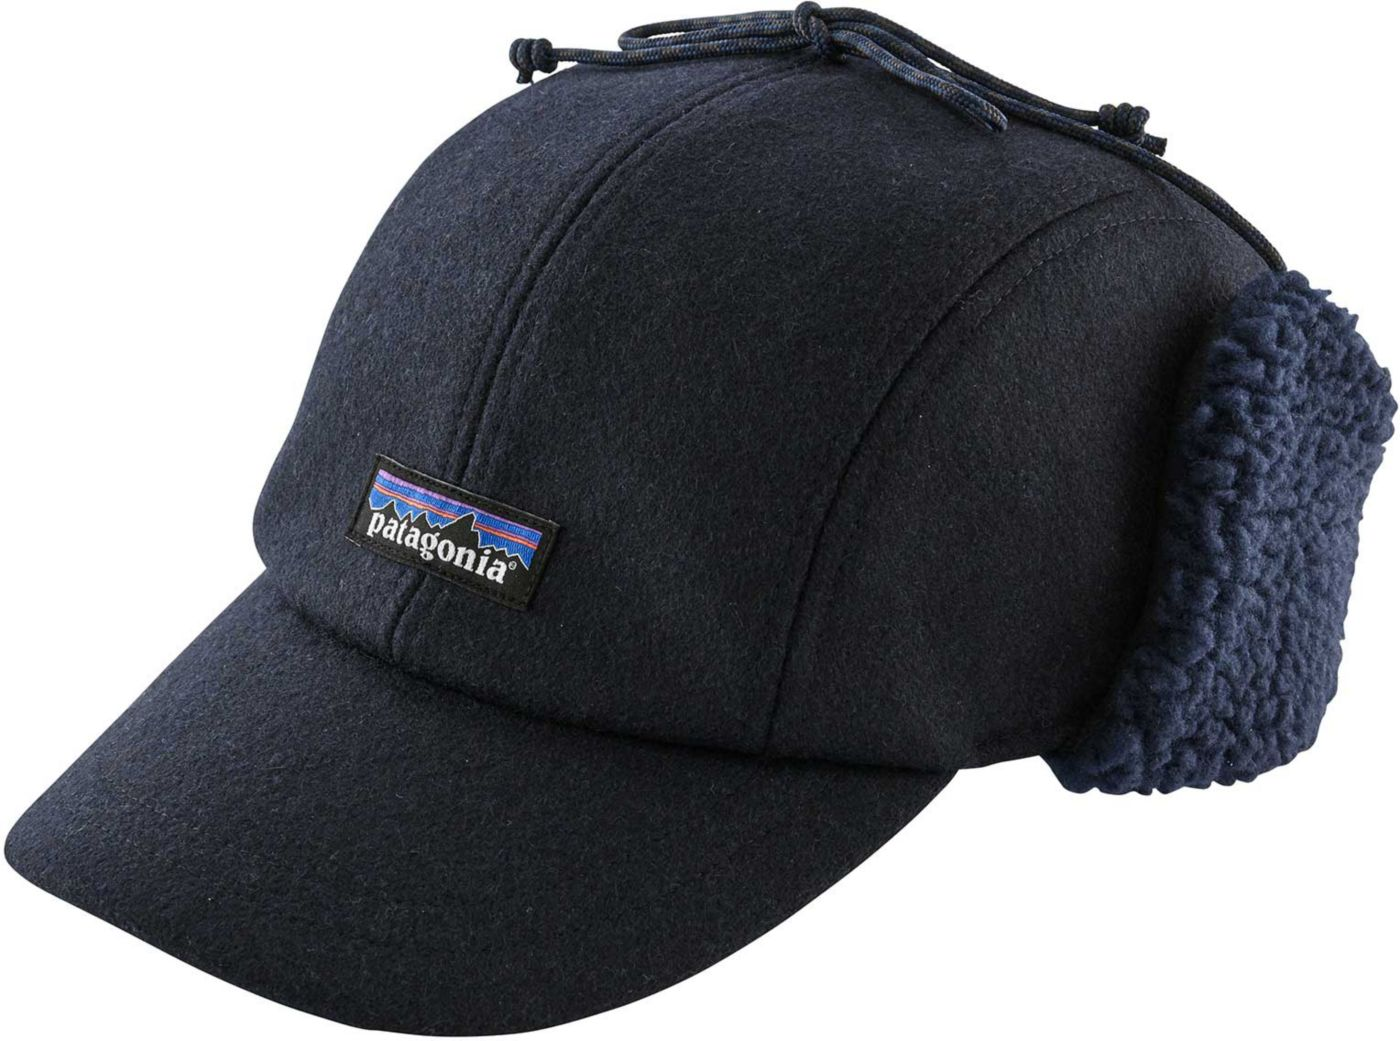 Patagonia Men's Recycled Wool Ear Flap Cap